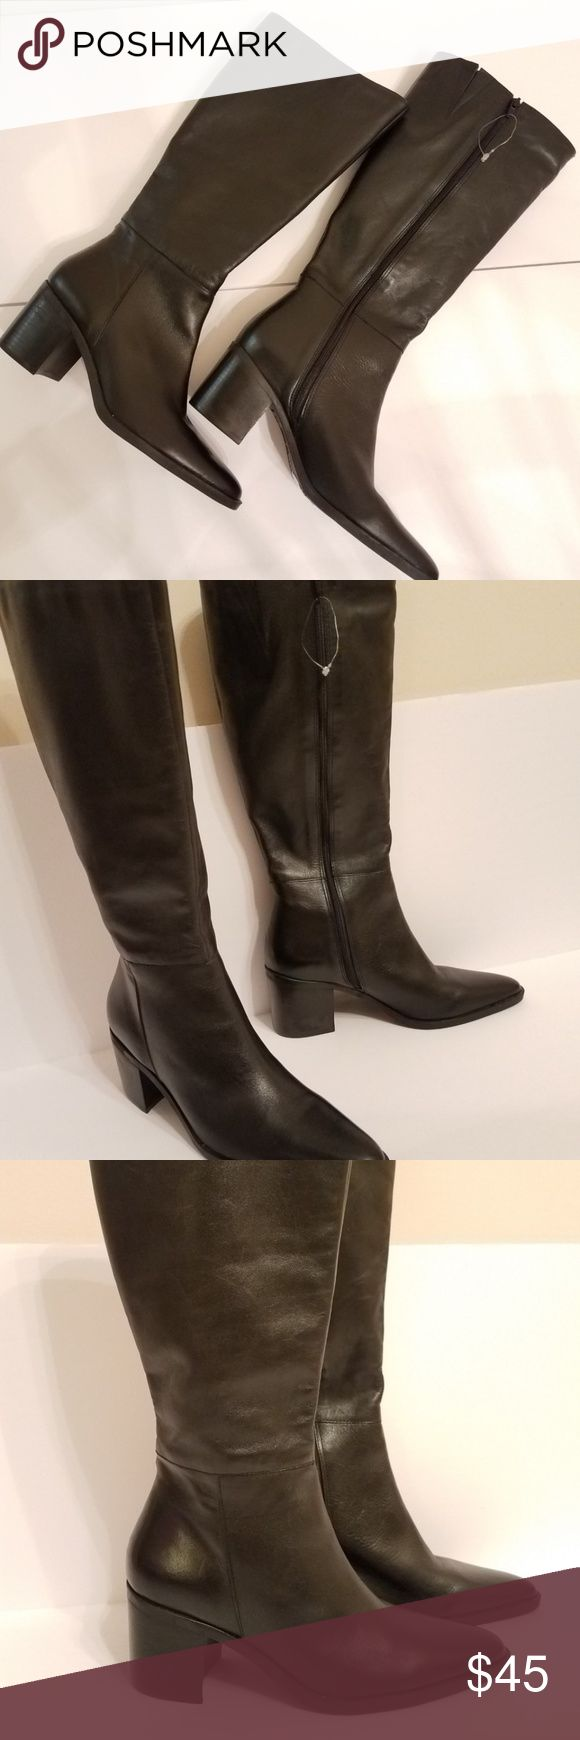 """Elegant Women Riding Black Leather Boots NEW New Without a Box! Elegant Black Leather Riding Boots with synthetic lining. Look amazing with skirts and dresses. This boots don`t fit wide calf. Please see the measurement and double it for the circumference.  Brand: Chinese Laundry Size 6.5 TRUE TO SIZE. Boots are made in Brasil. Measurement: ankle is 4.5"""" across Calf is 7"""" across Heel 2.5"""" From ankle to the top of the boot 10.5"""" From the top to the start of the heel 14"""" Thank you for your…"""